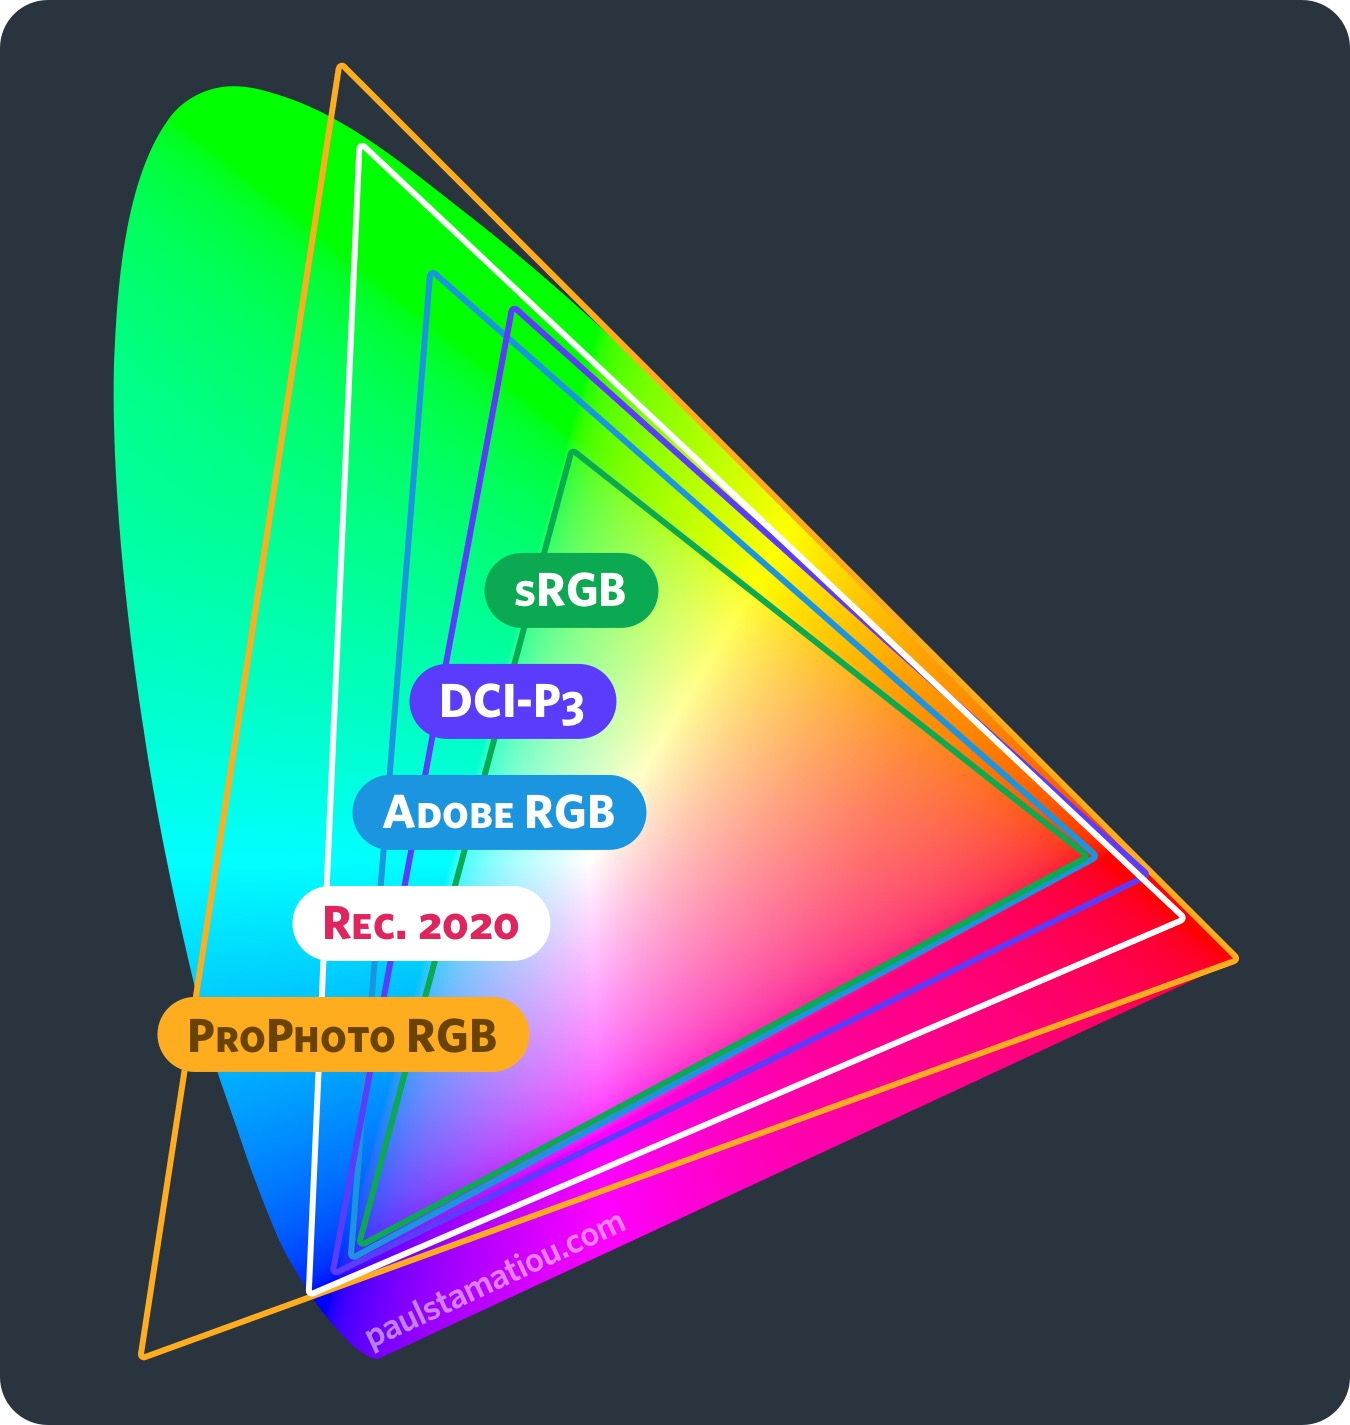 CIE1931 color space comparisons: ProPhoto RGB, Rec. 2020, Adobe RGB, DCI-P3, sRGB